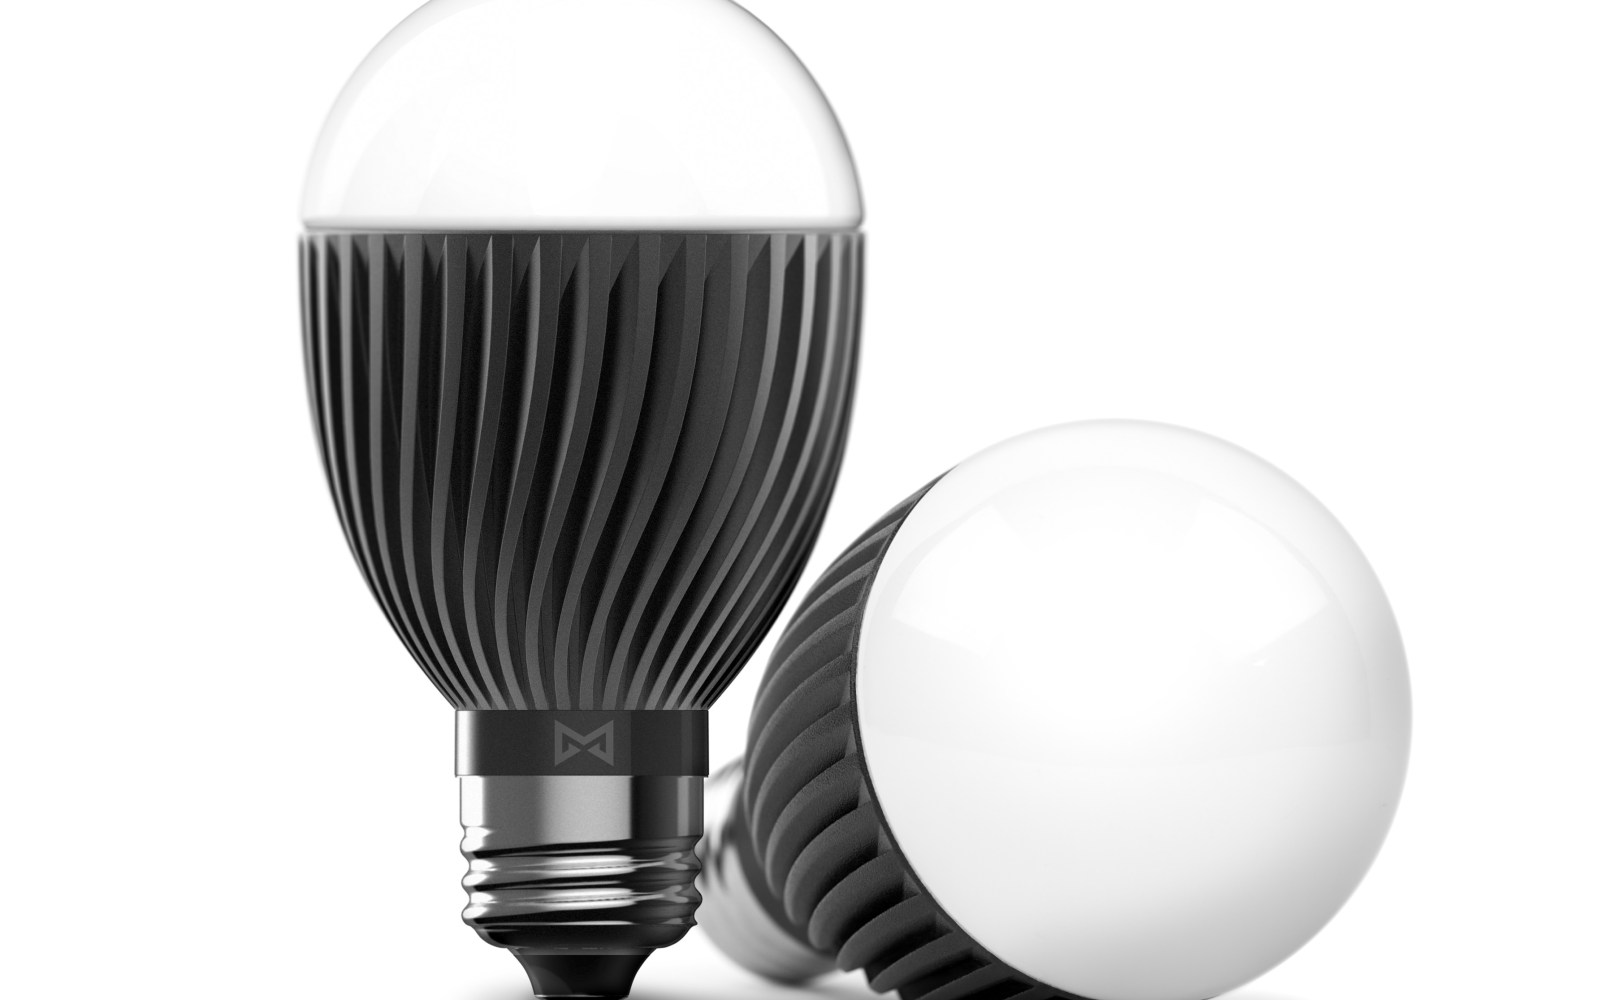 Misfit introduces Bolt, its smart light bulb w/ sleep tracking device integration